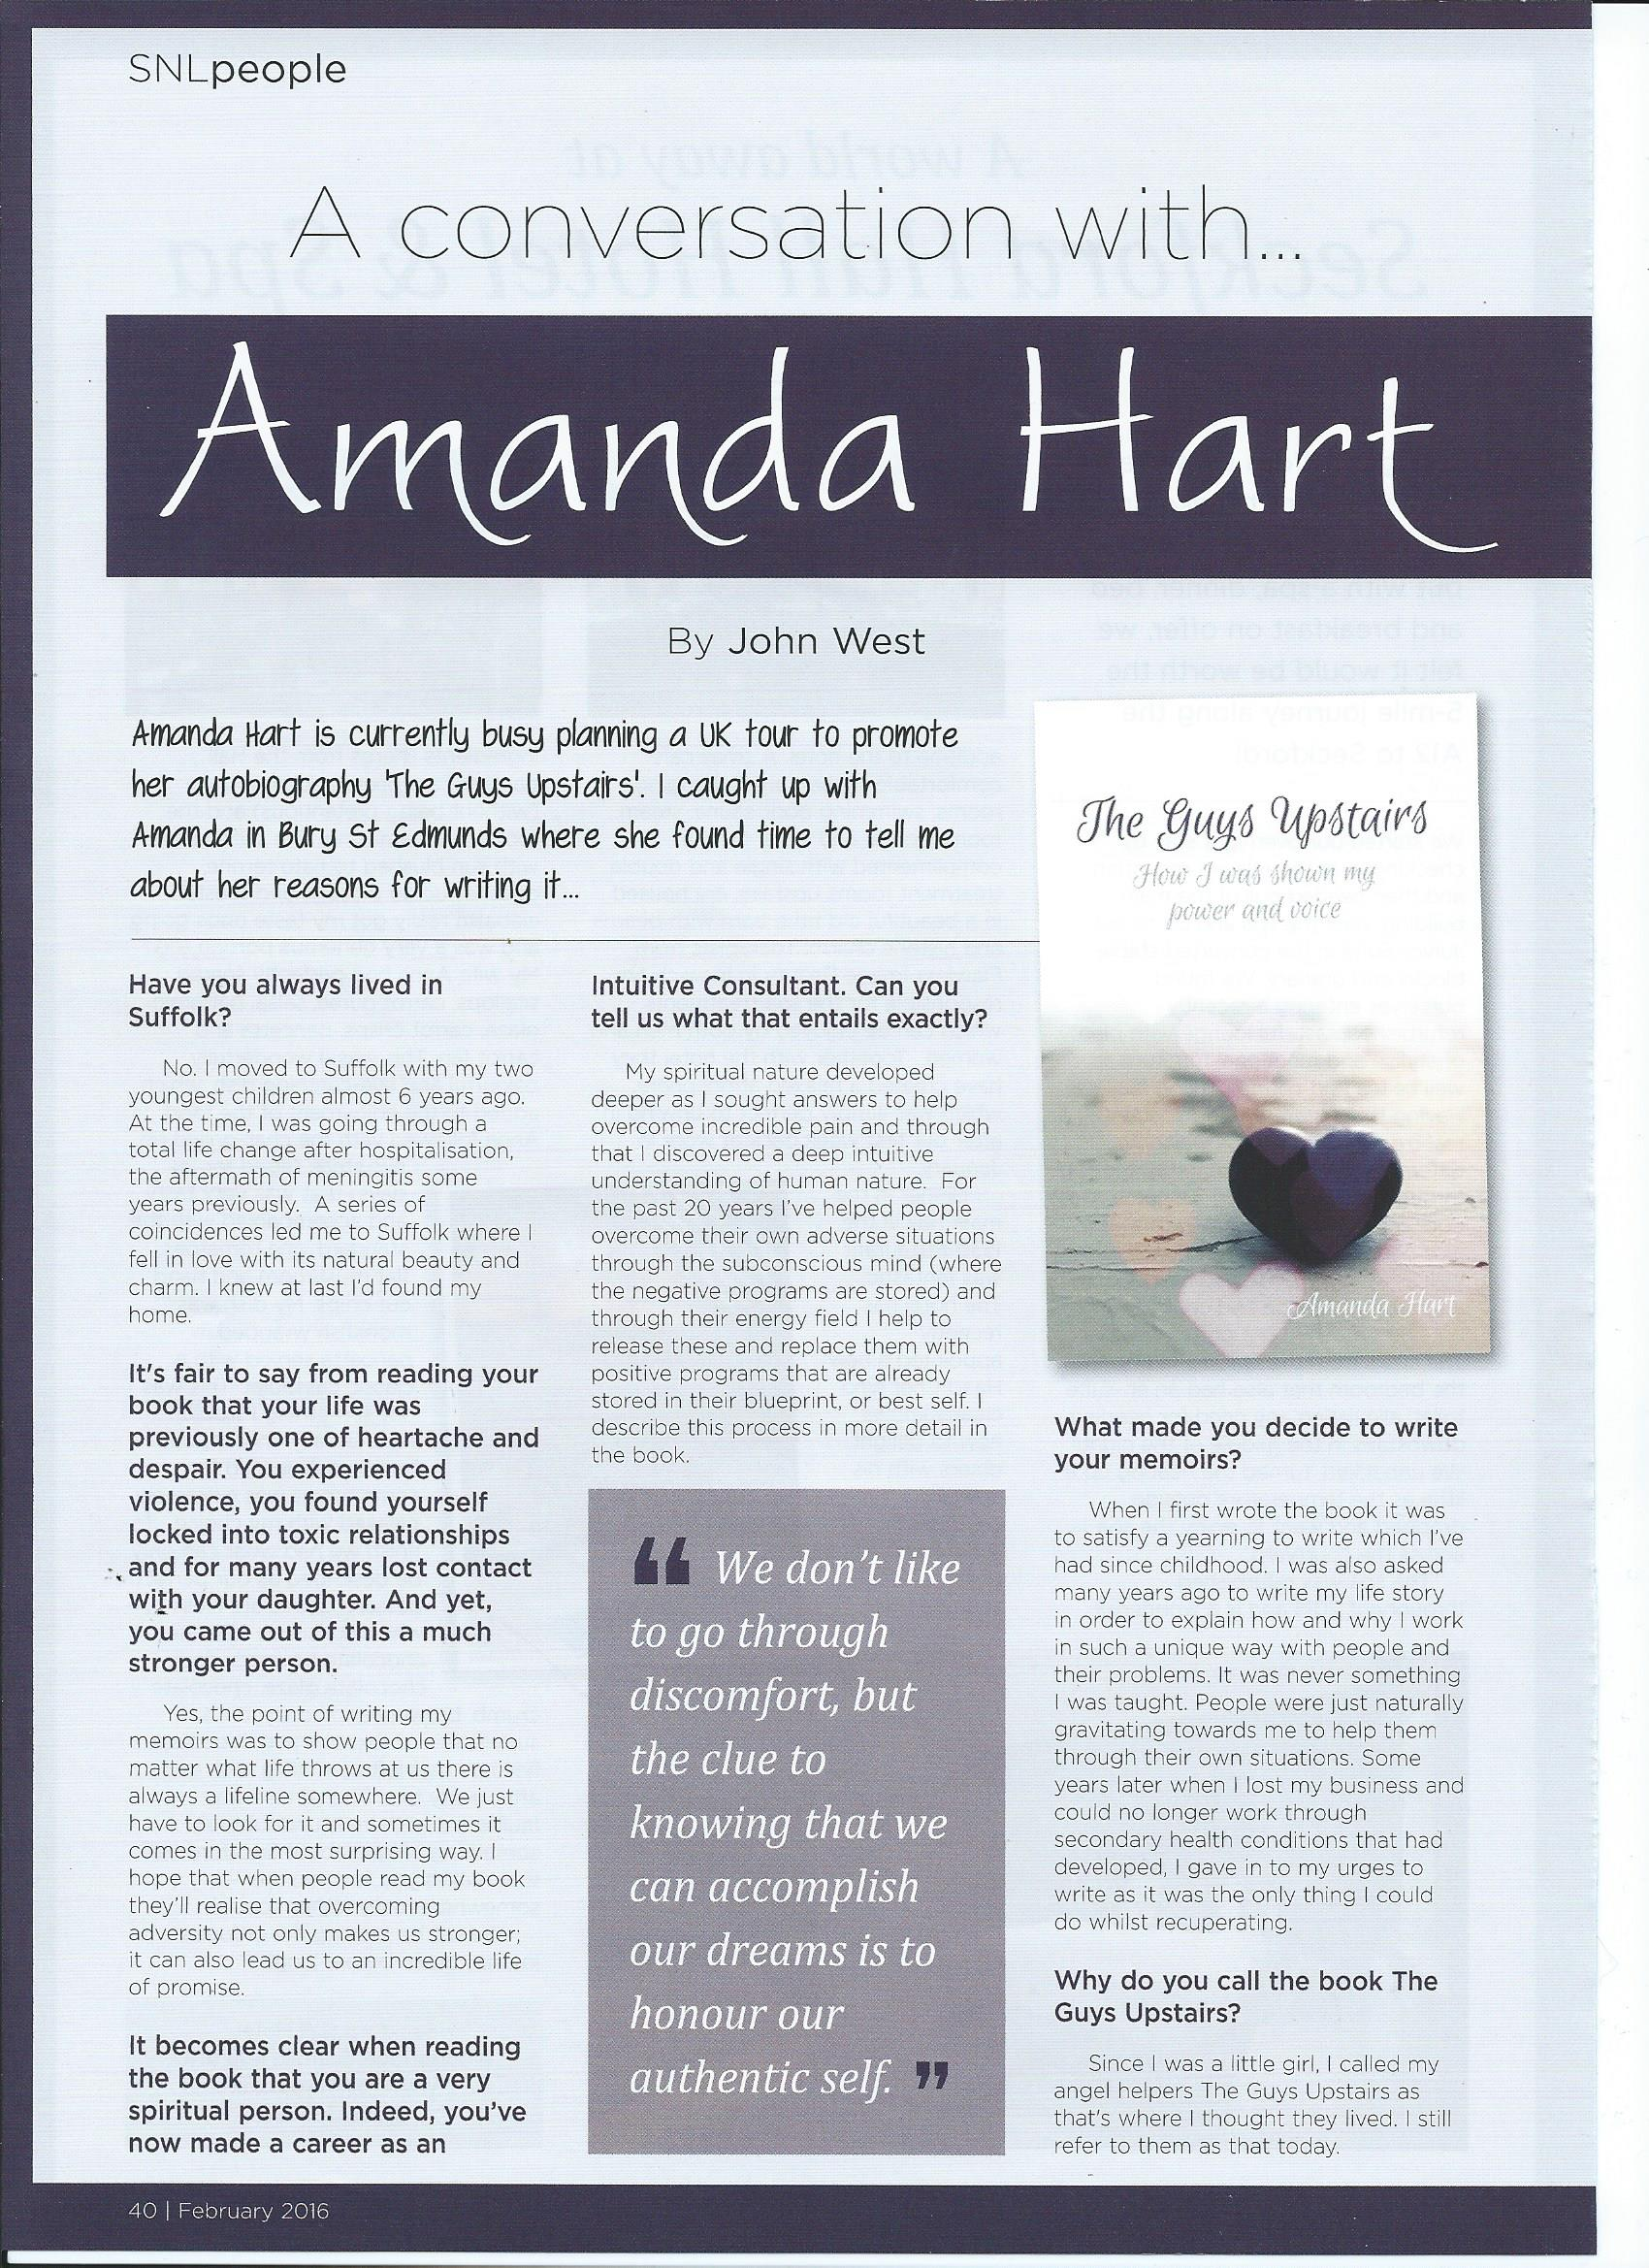 A Conversation with Amanda Hart Page 1 001